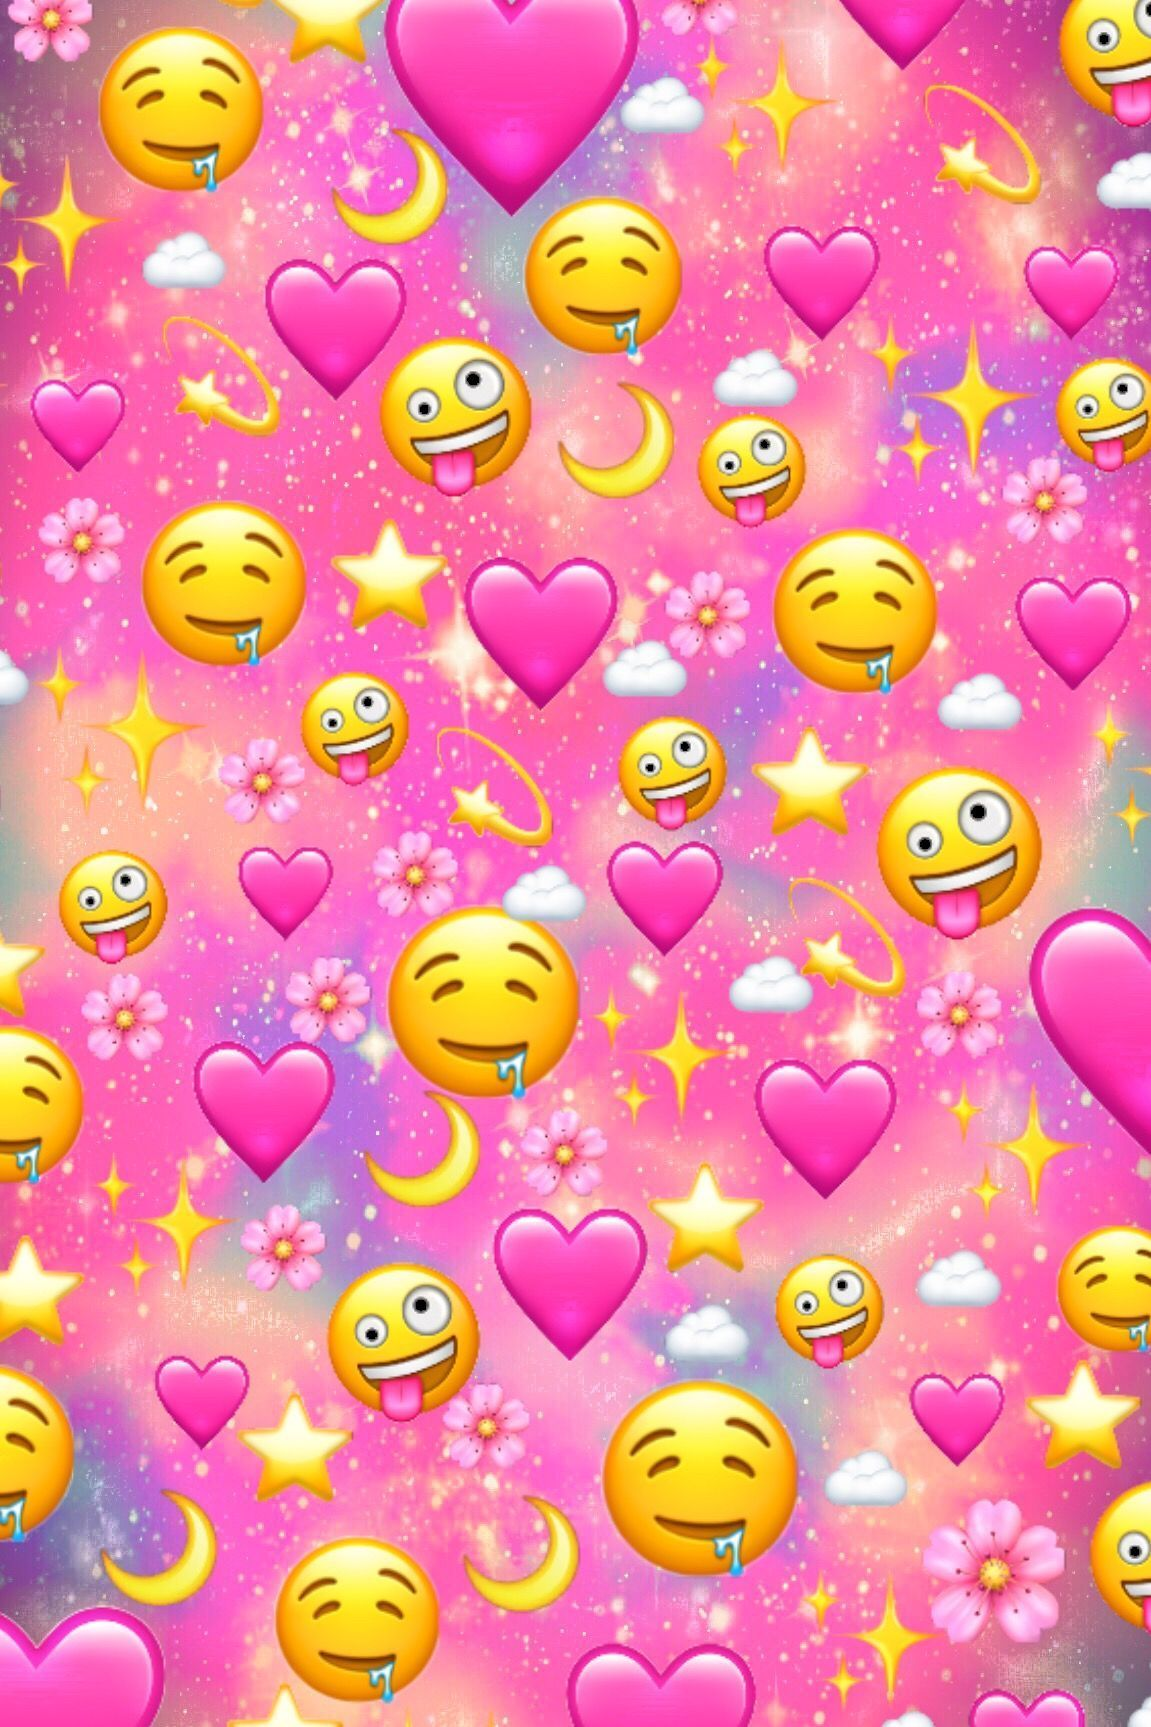 Love Hearts And Emojis Galaxy Wallpaper In 2020 Emoji Wallpaper Iphone Pink Wallpaper Iphone Wallpaper Iphone Cute